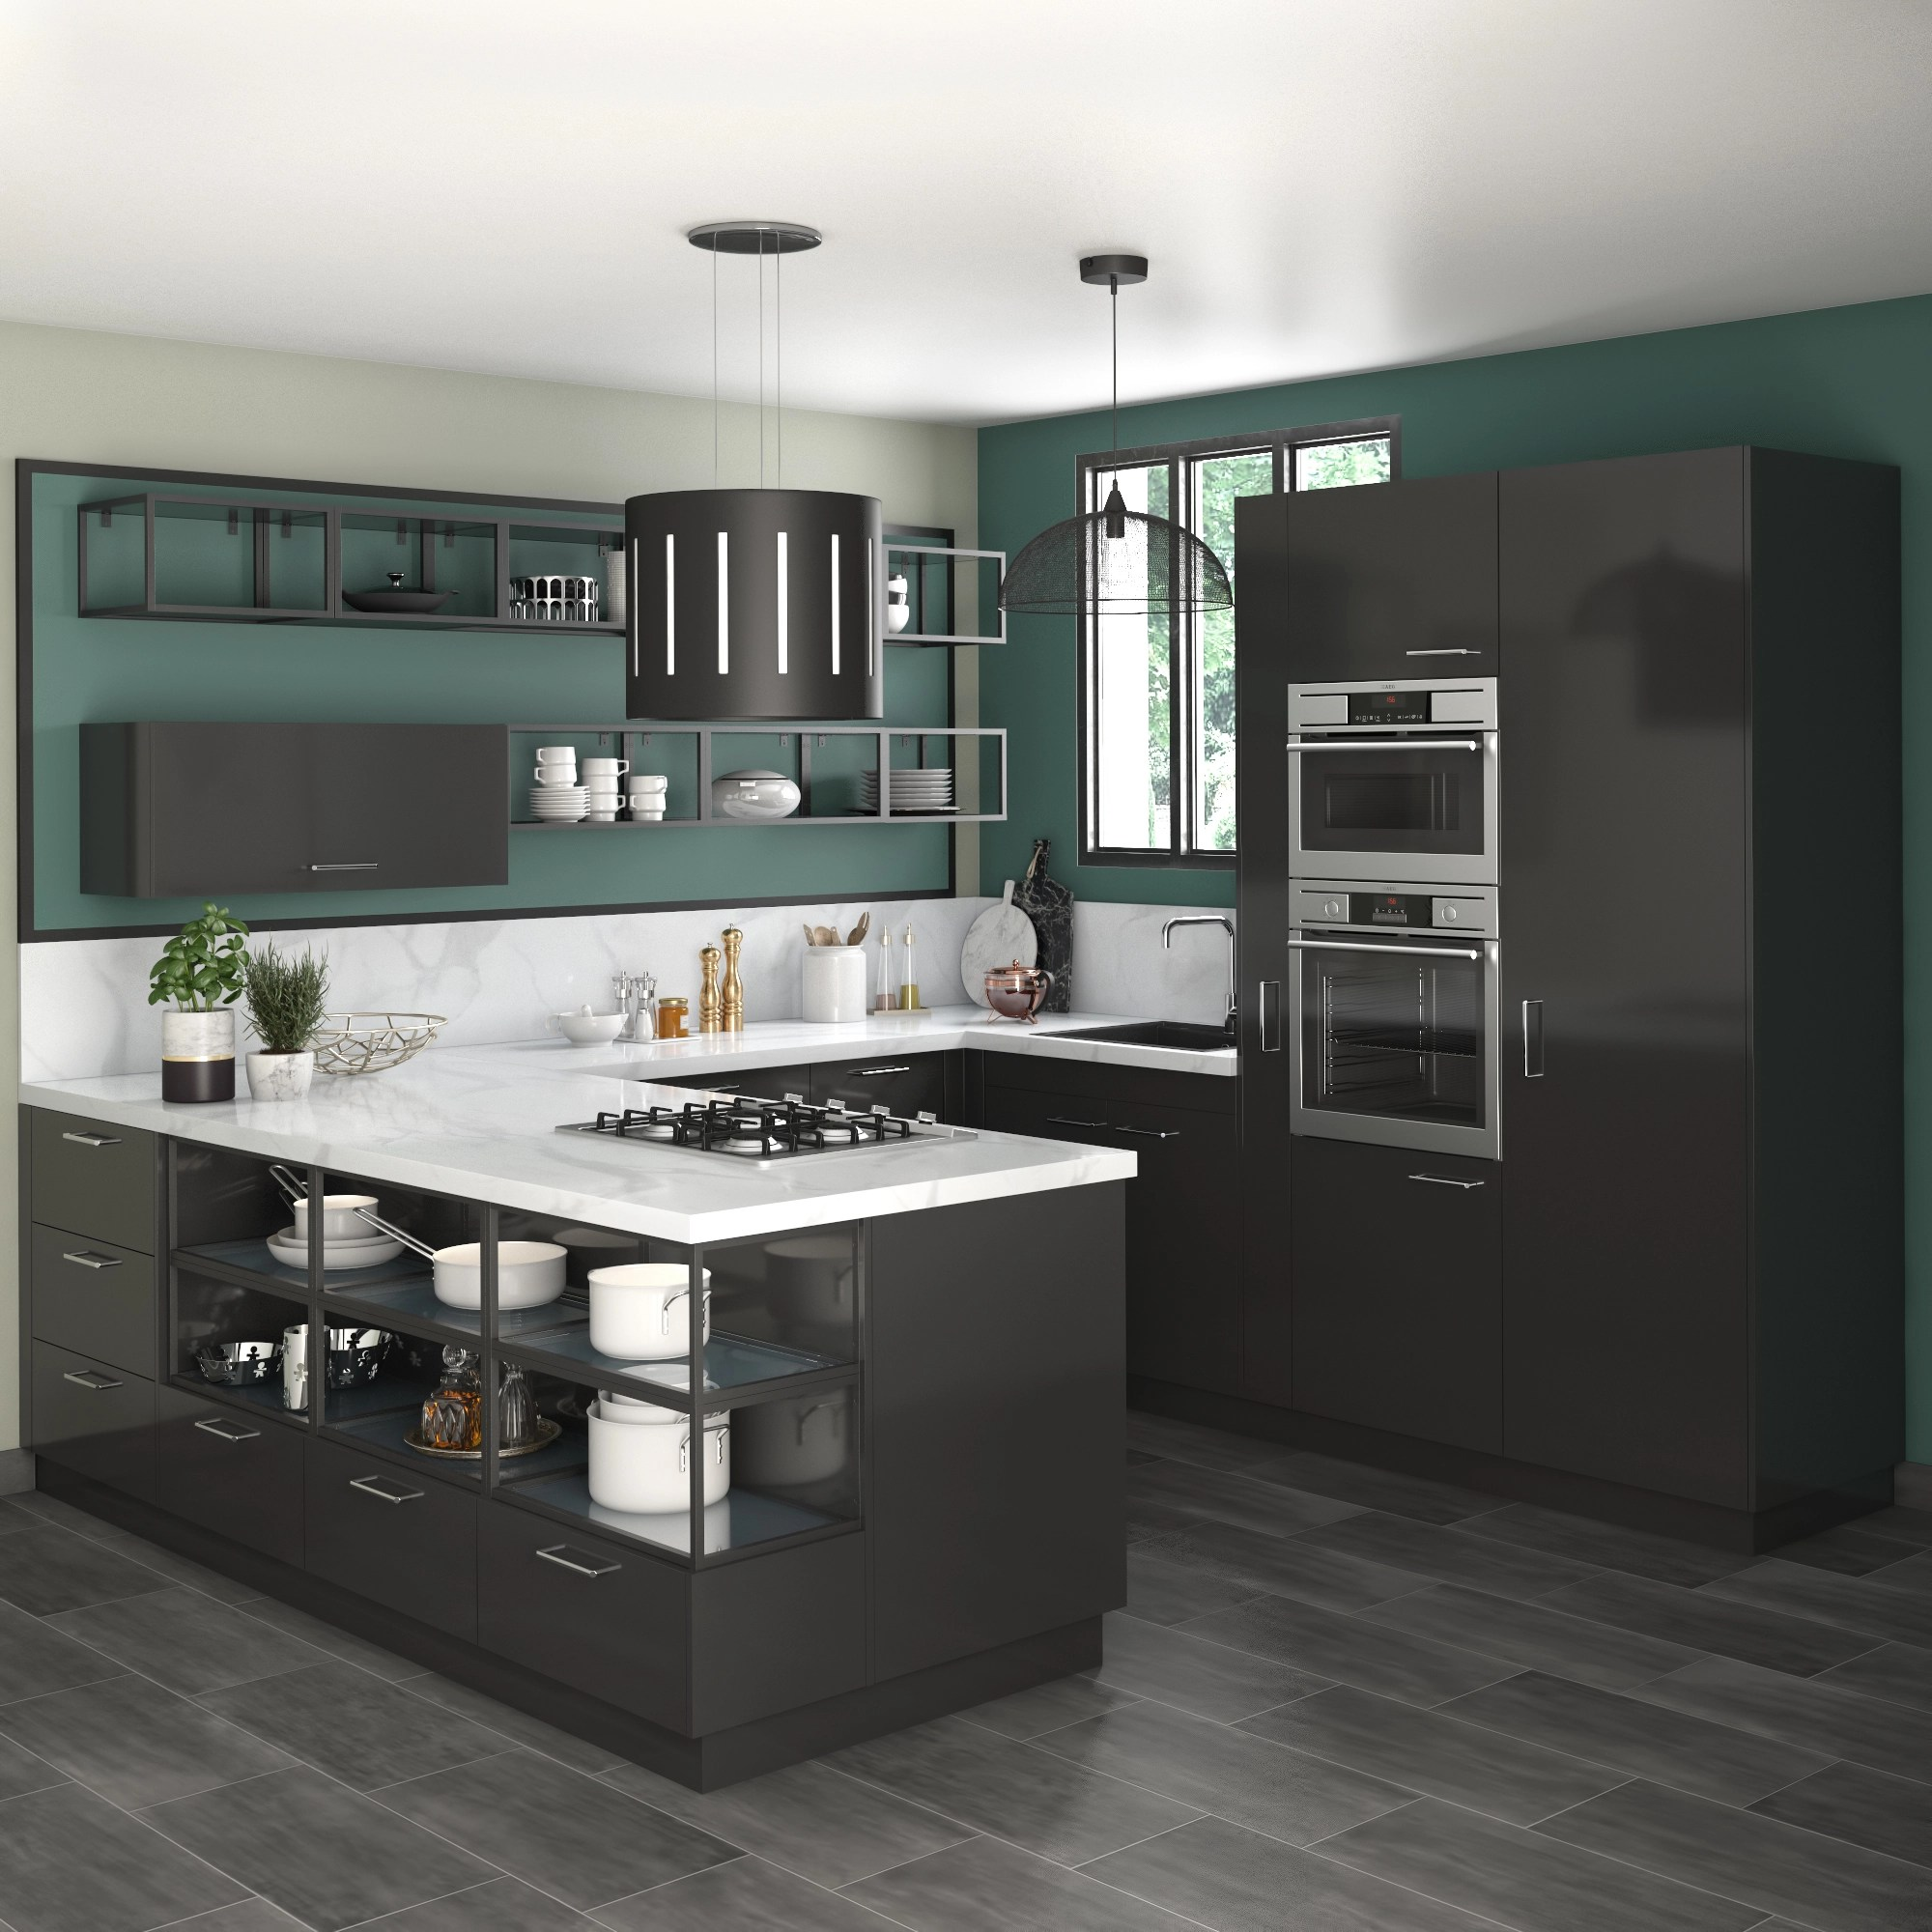 Delinia Sevilla Black Designer Kitchen By Leroy Merlin - Magic Corner Leroy Merlin